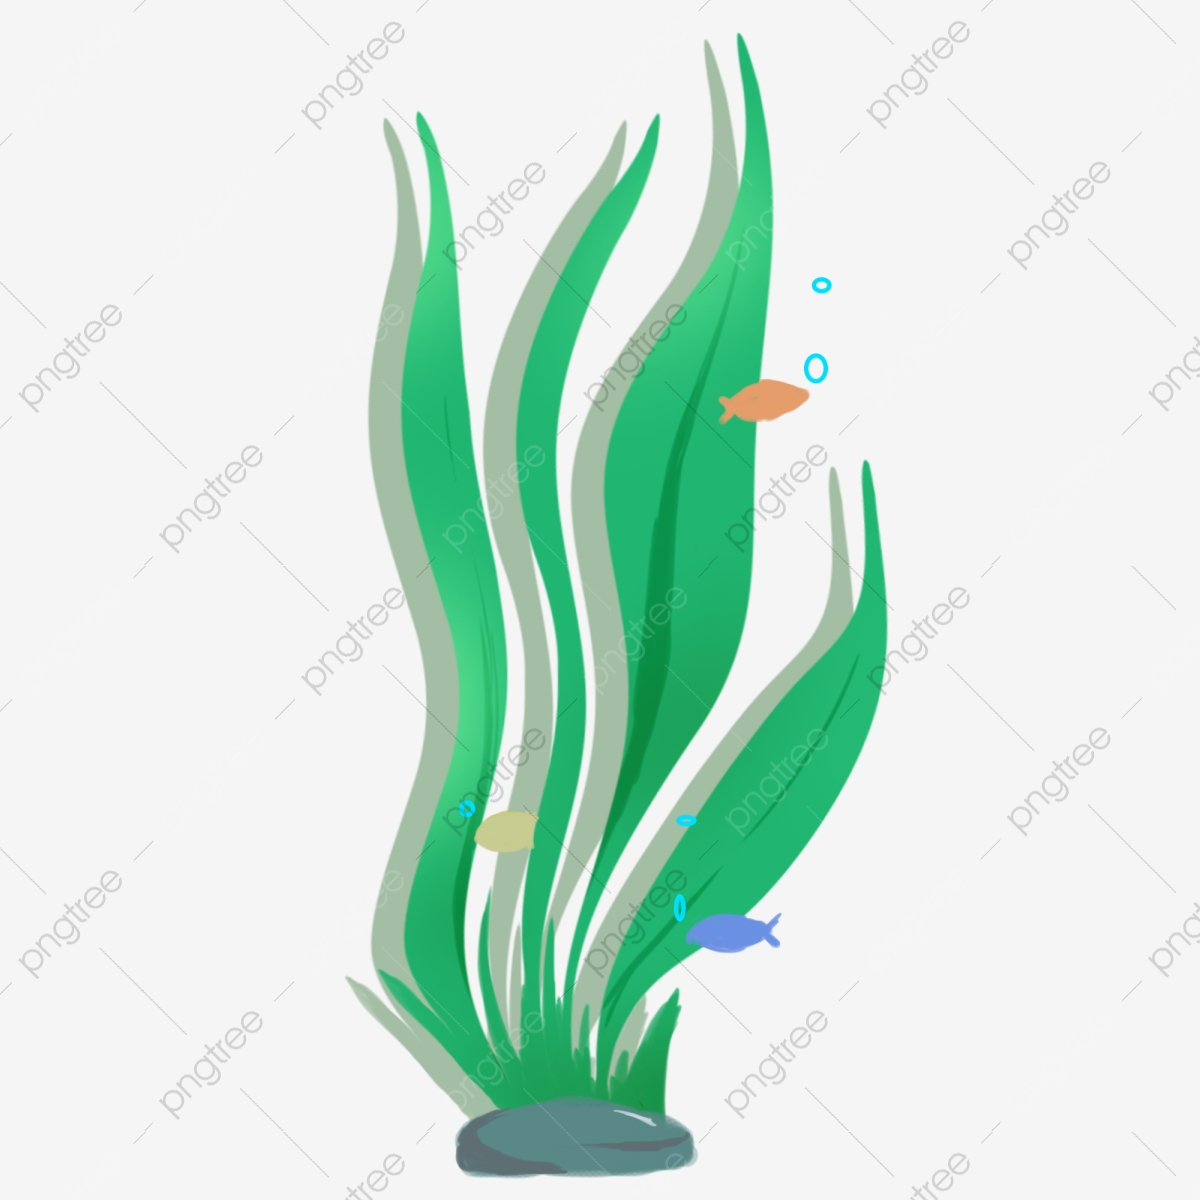 cartoon cute underwater grass and small fish seabed water grass cute png transparent clipart image and psd file for free download https pngtree com freepng cartoon cute underwater grass and small fish 4594719 html